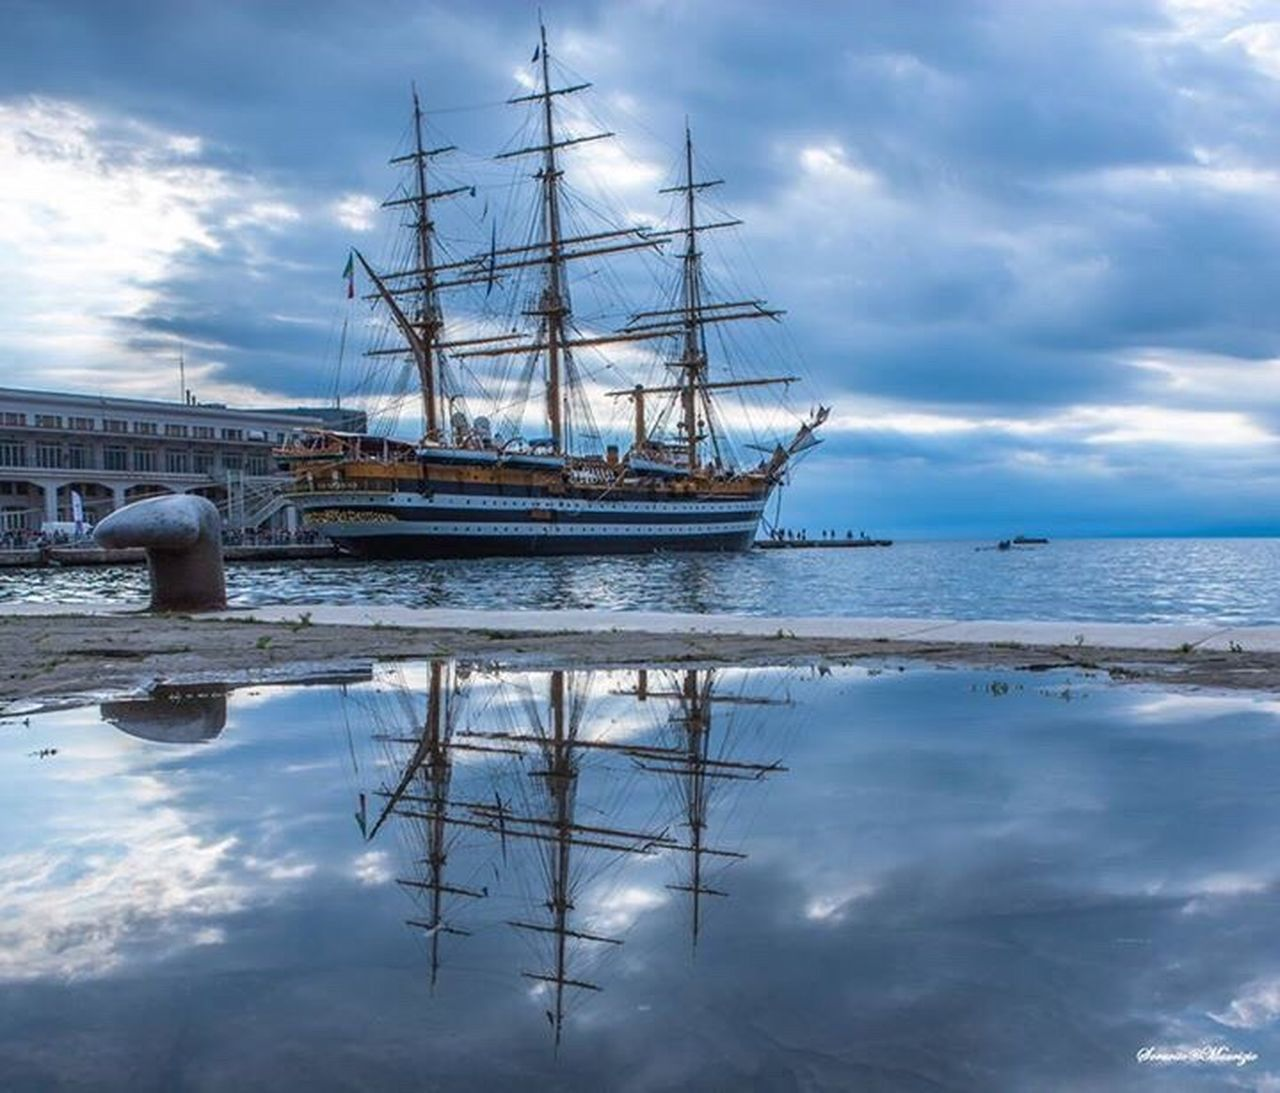 cloud - sky, water, sky, nautical vessel, reflection, no people, nature, sea, outdoors, day, tranquility, harbor, mast, scenics, sailing ship, beauty in nature